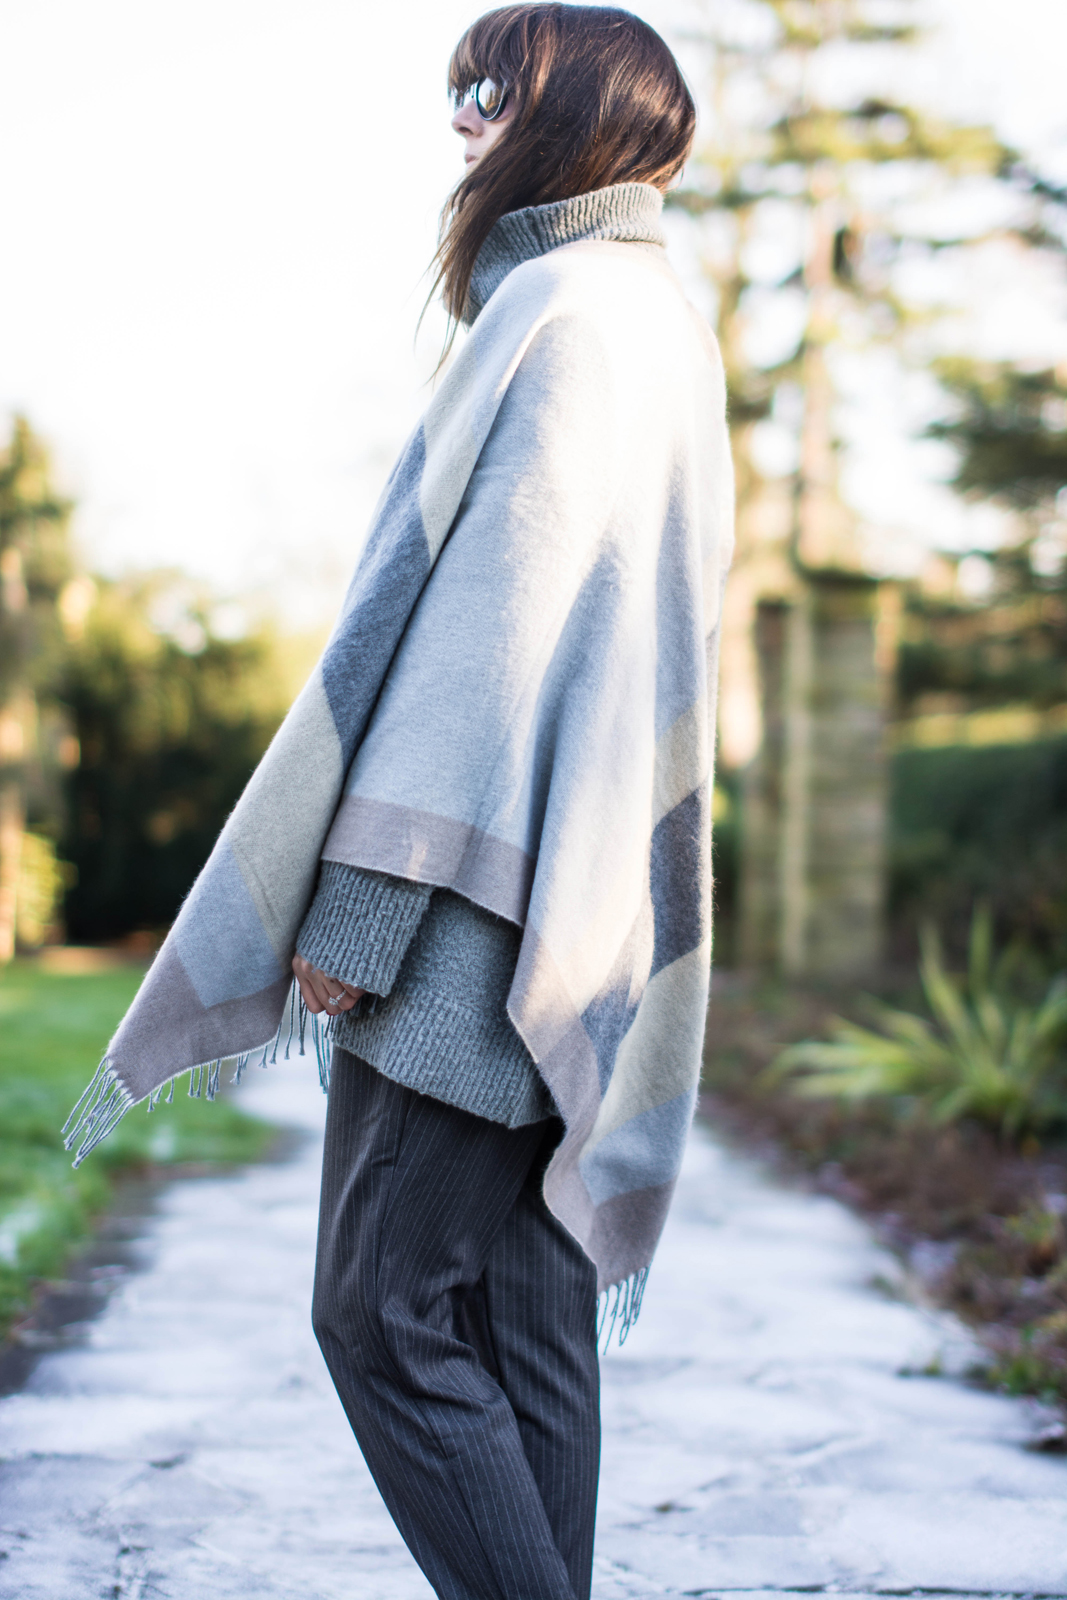 EJSTYLE - River Island Grey Blanket Cape, pinstripe forever 21 trousers, grey Zara jumper, OOTD, Winter outfit